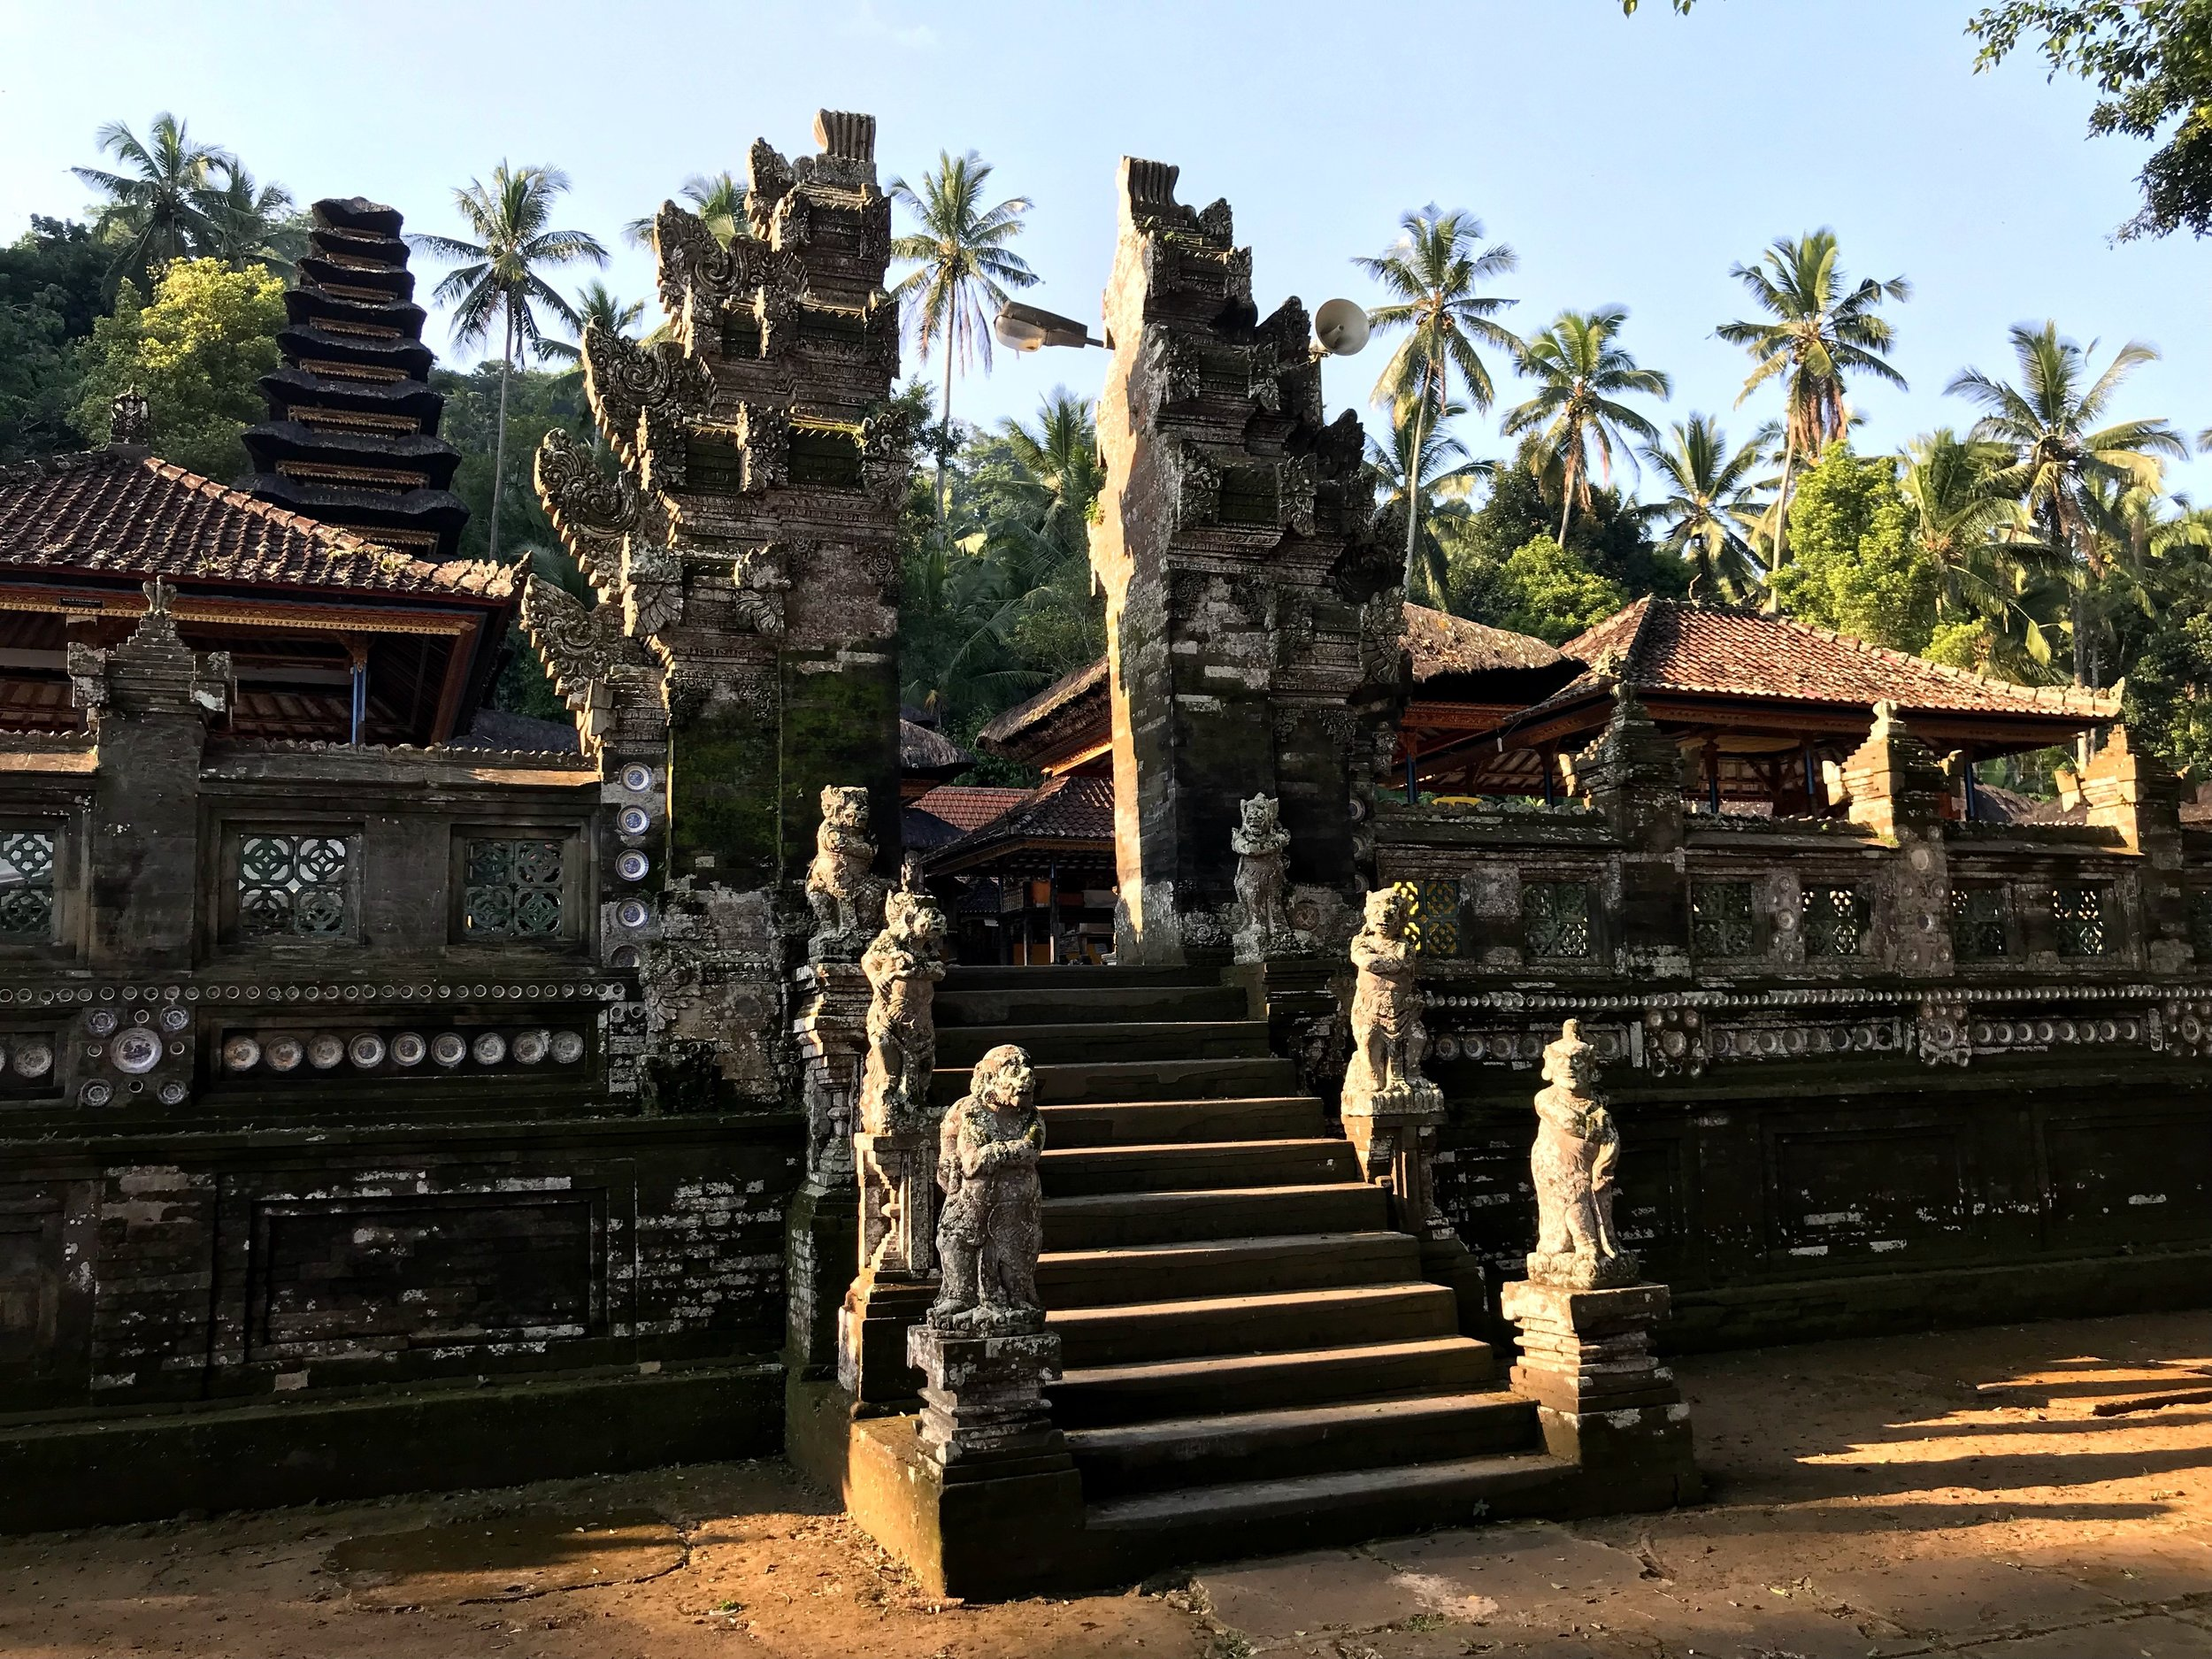 Smaller candi bentar gates divide courtyards on the temple complex